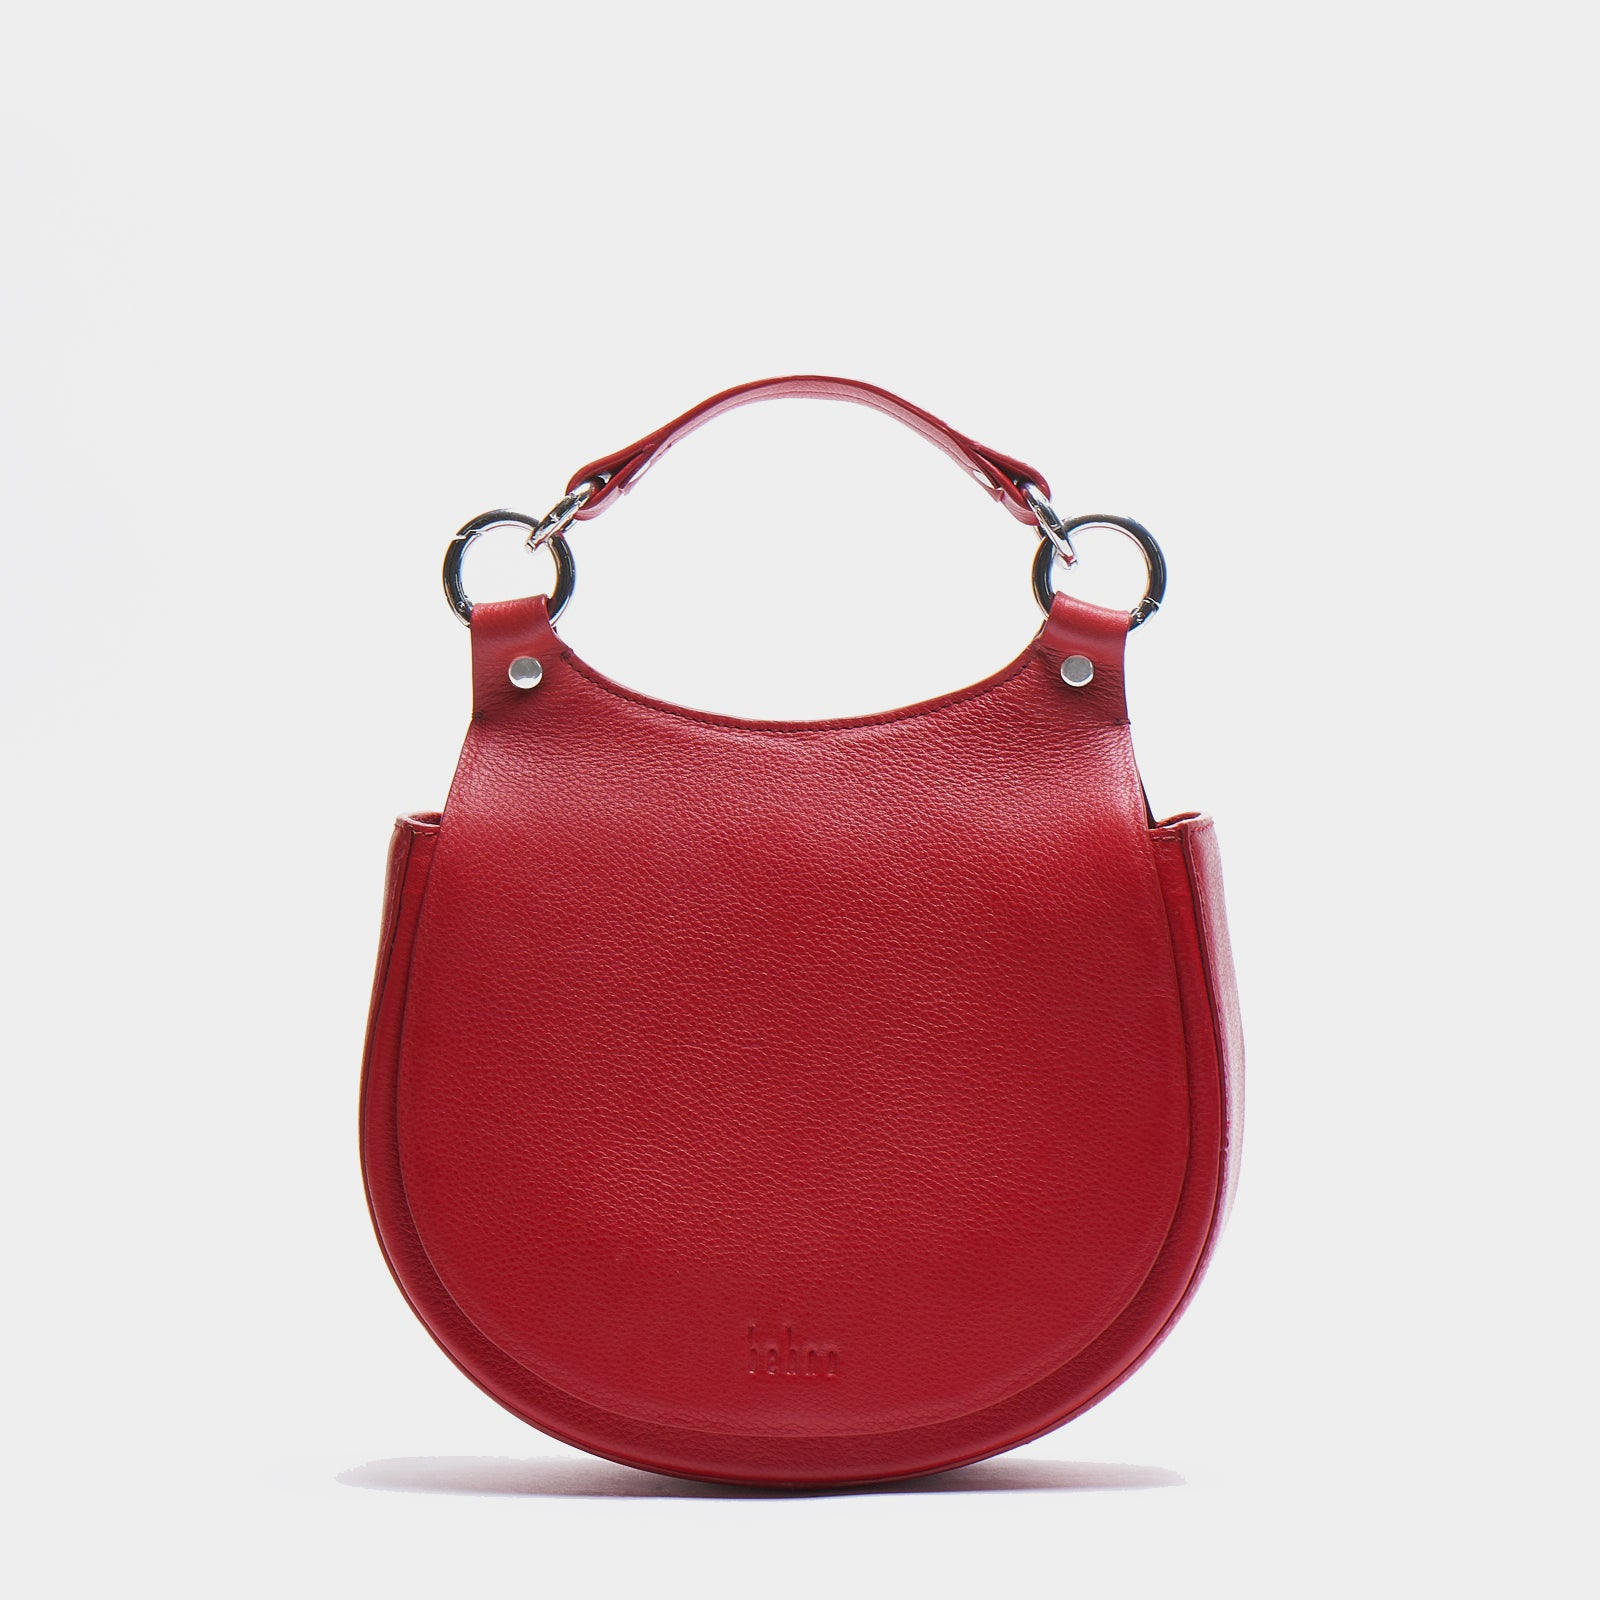 TILDA SADDLE BAG PEBBLE RED